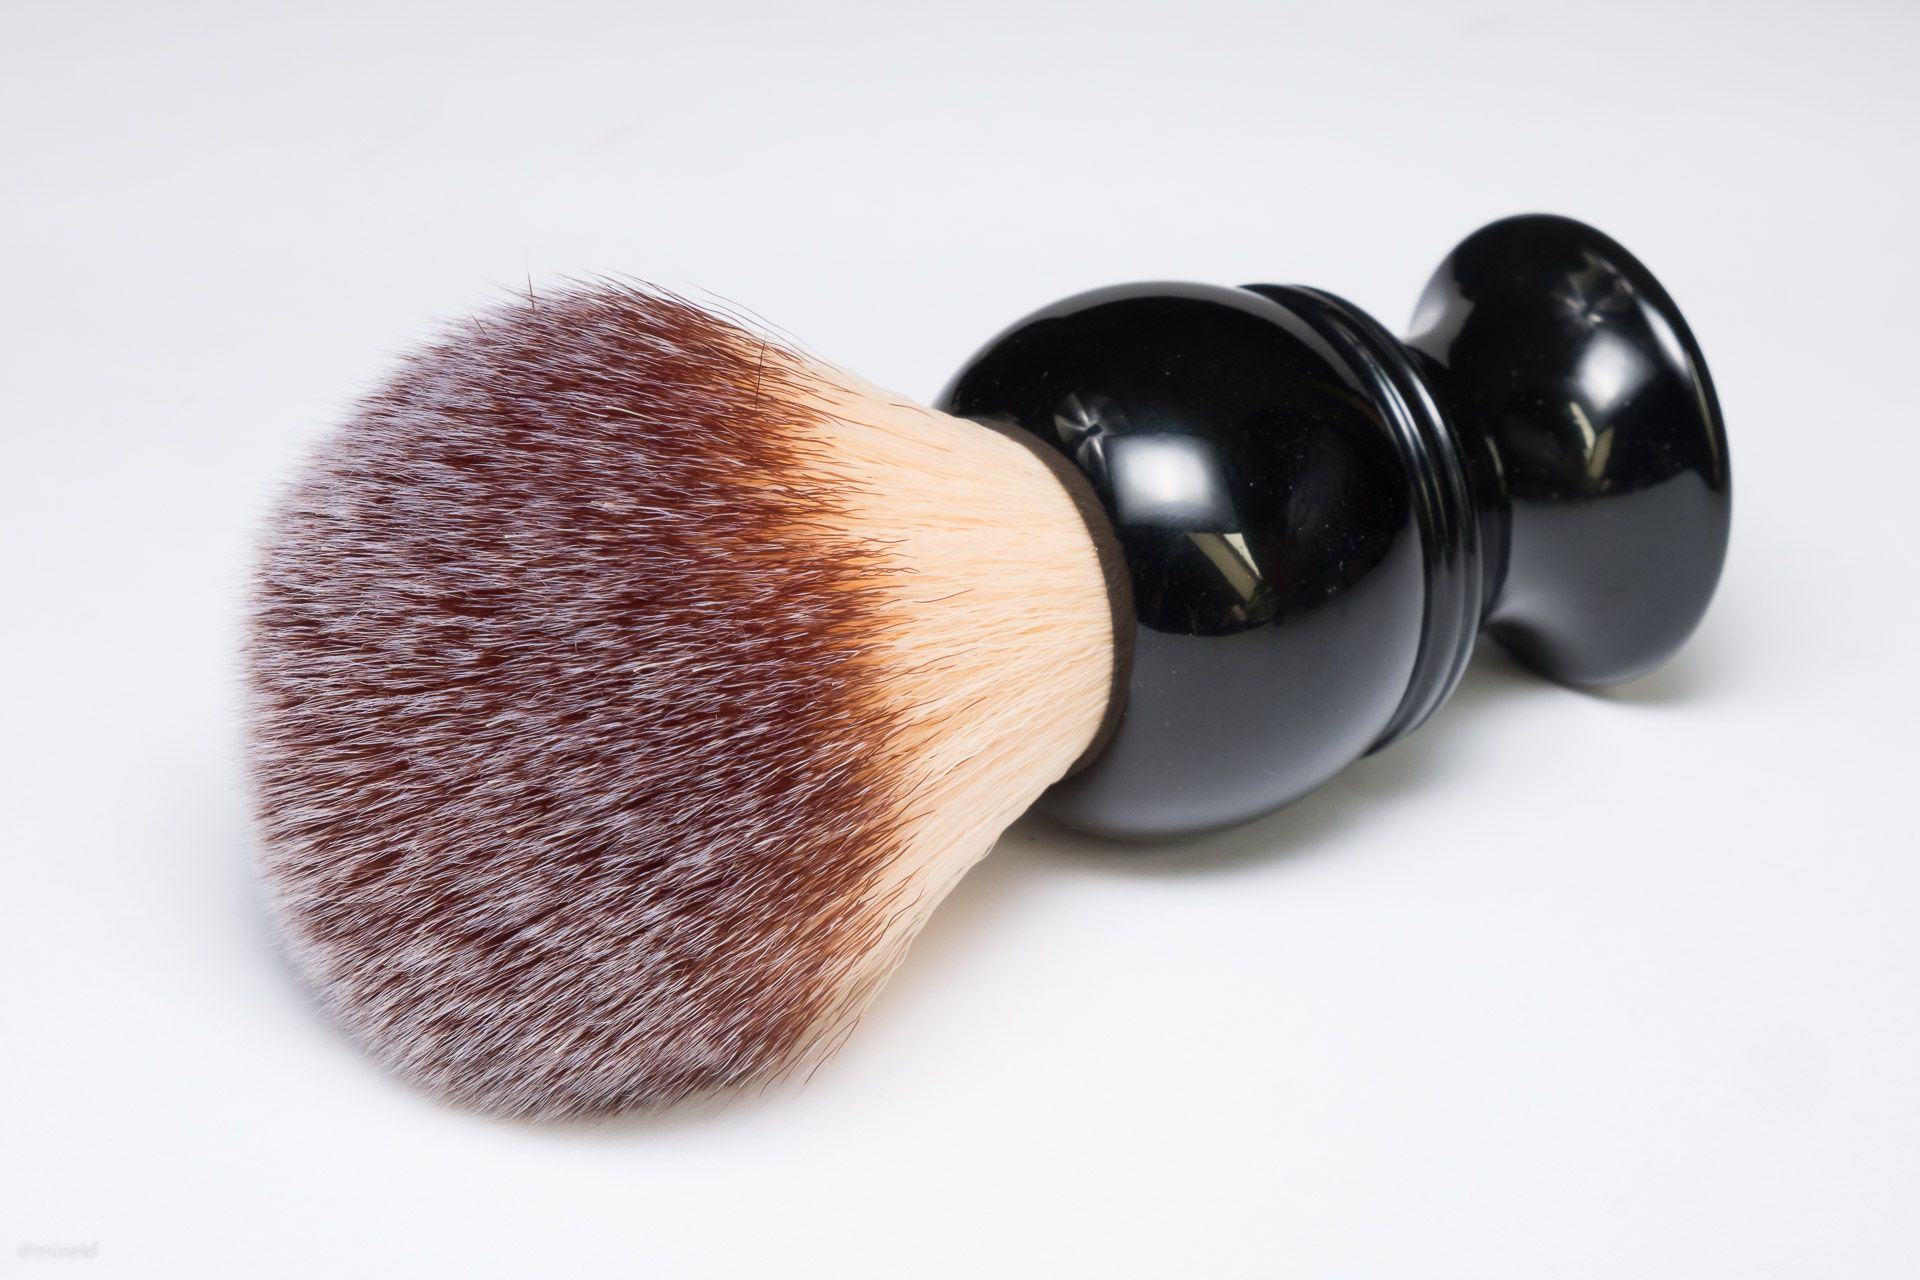 You are currently viewing Maggard Razors 24mm Synthetic Shaving Brush, Black Handle – recenzja pędzla do golenia